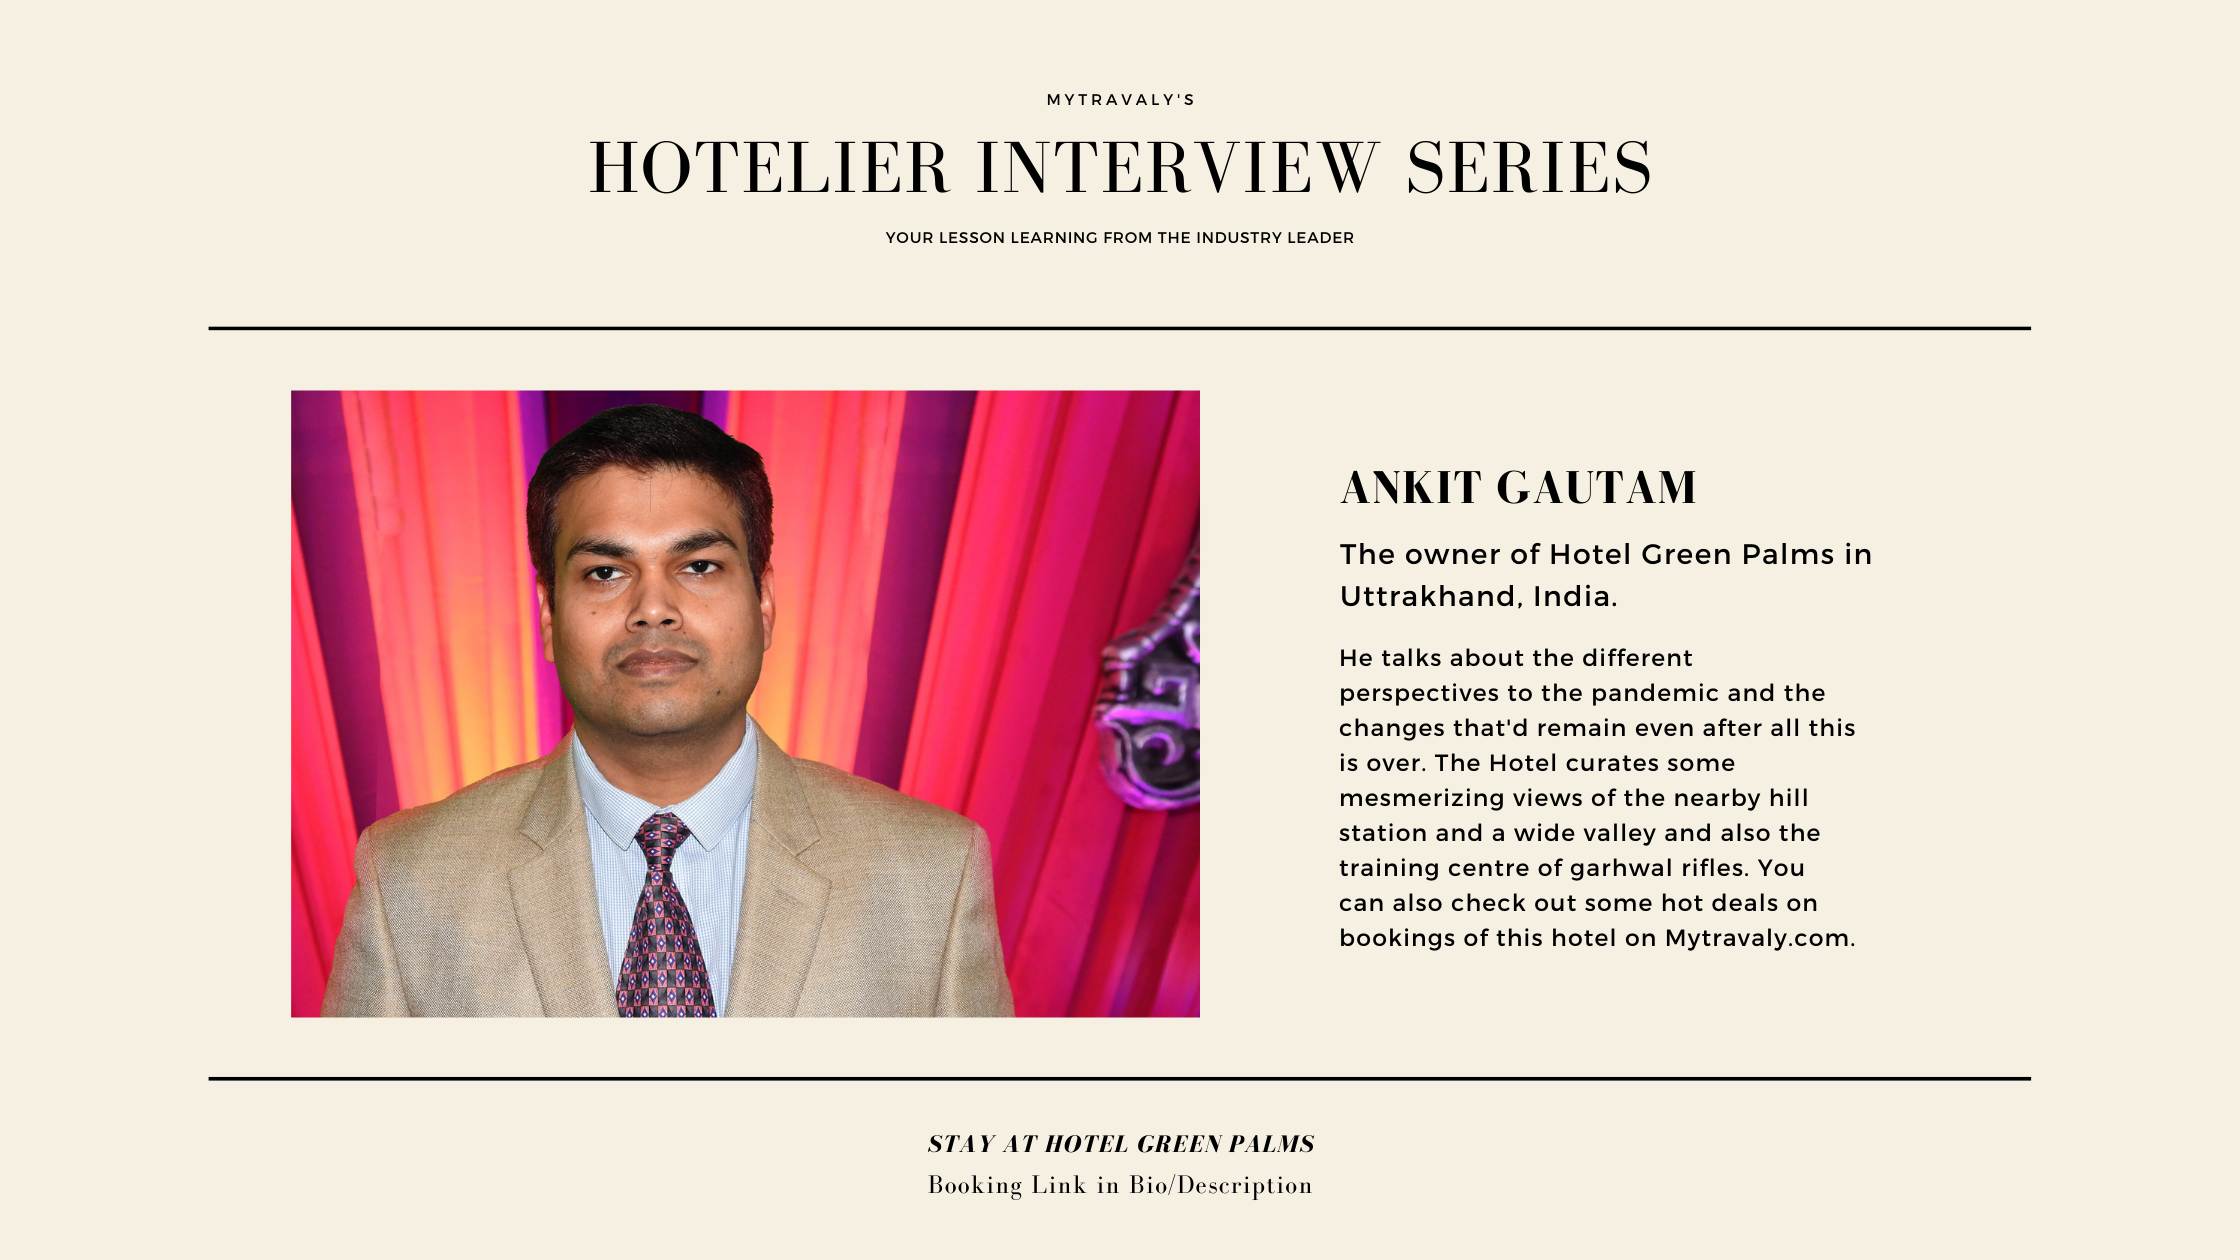 MyTravaly's Hotelier Interview Series Hotel Green Palms, Uttrakhand